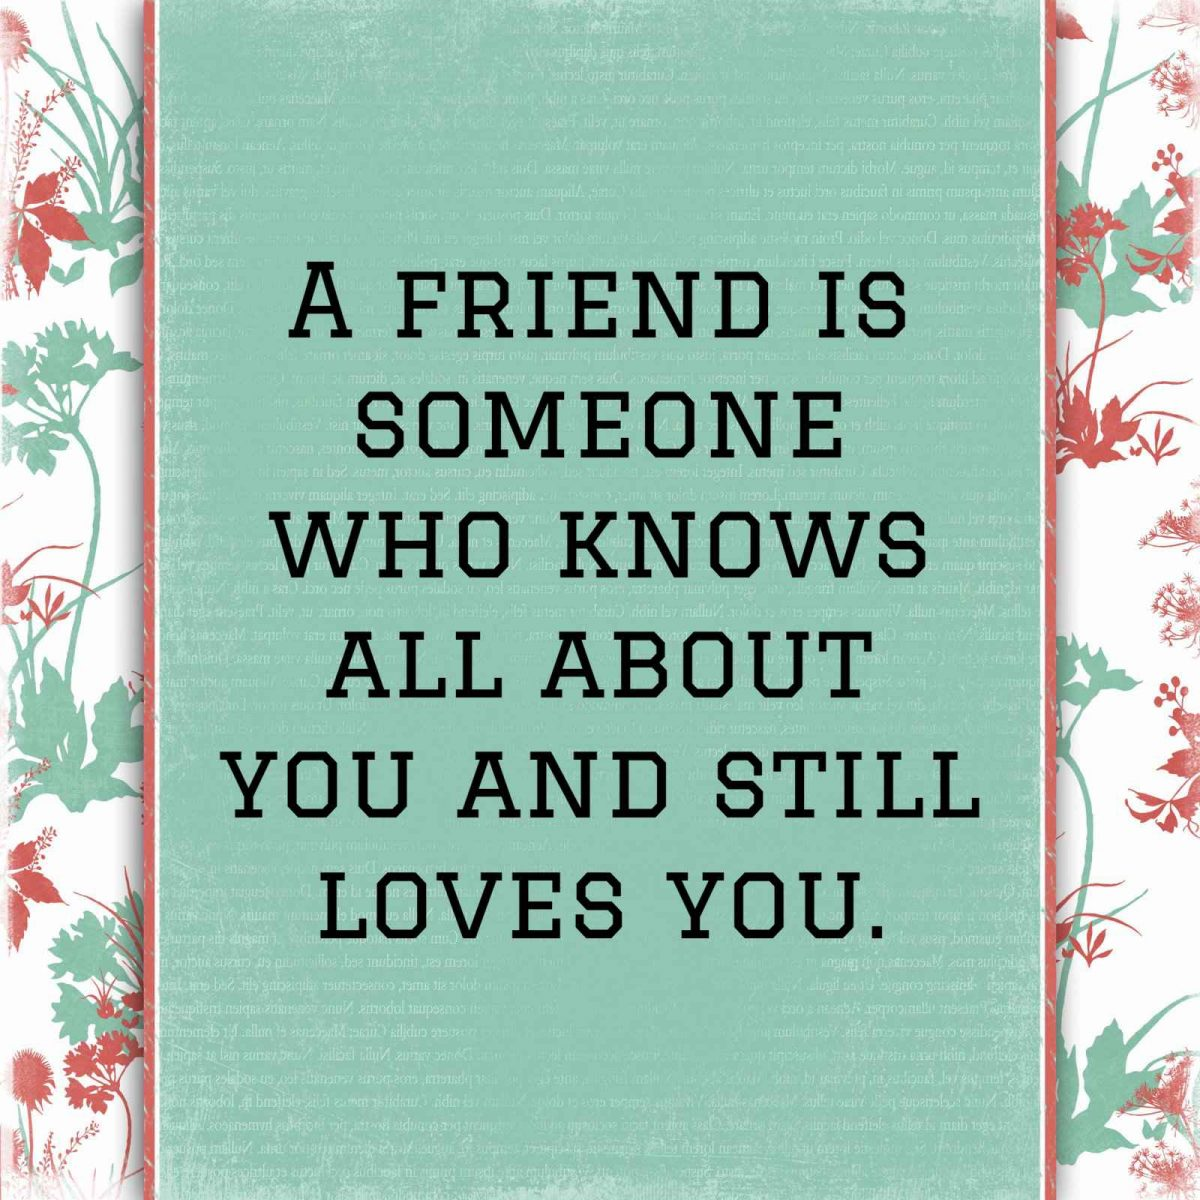 10 Easy To Remember Short Friendship Quotes - QuoteReel